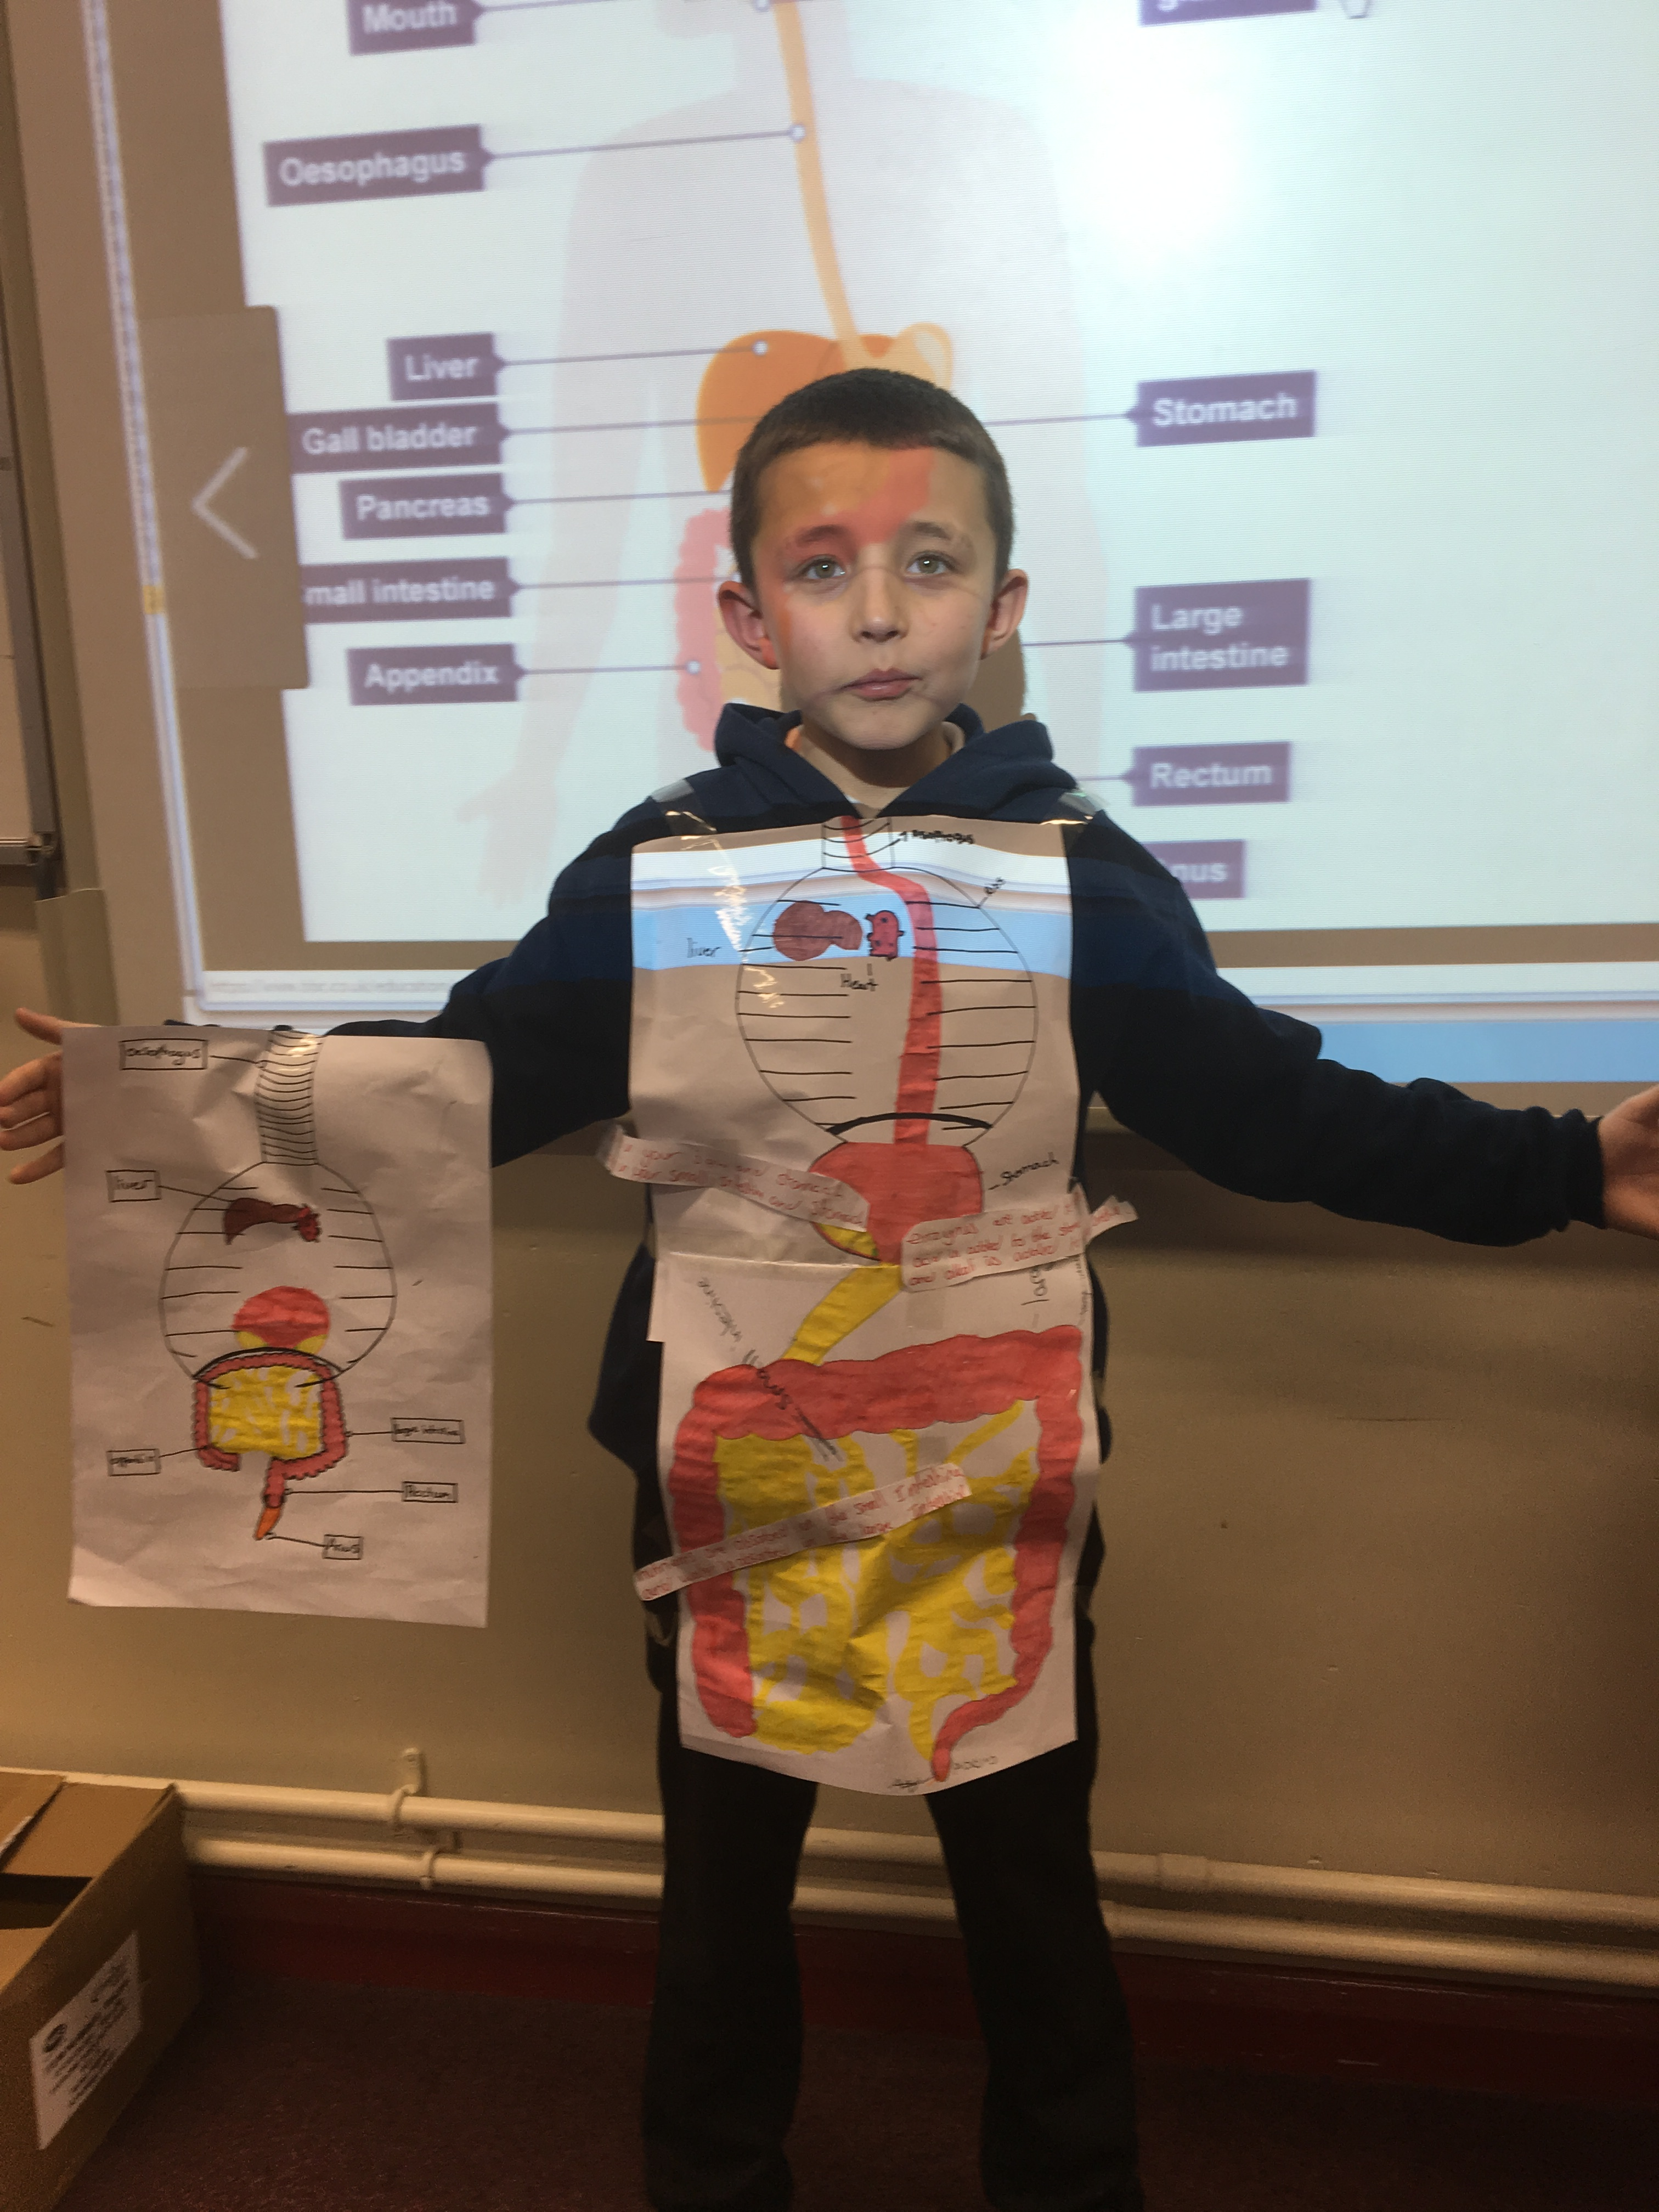 Year 8 Learn About The Digestive System Pinboard